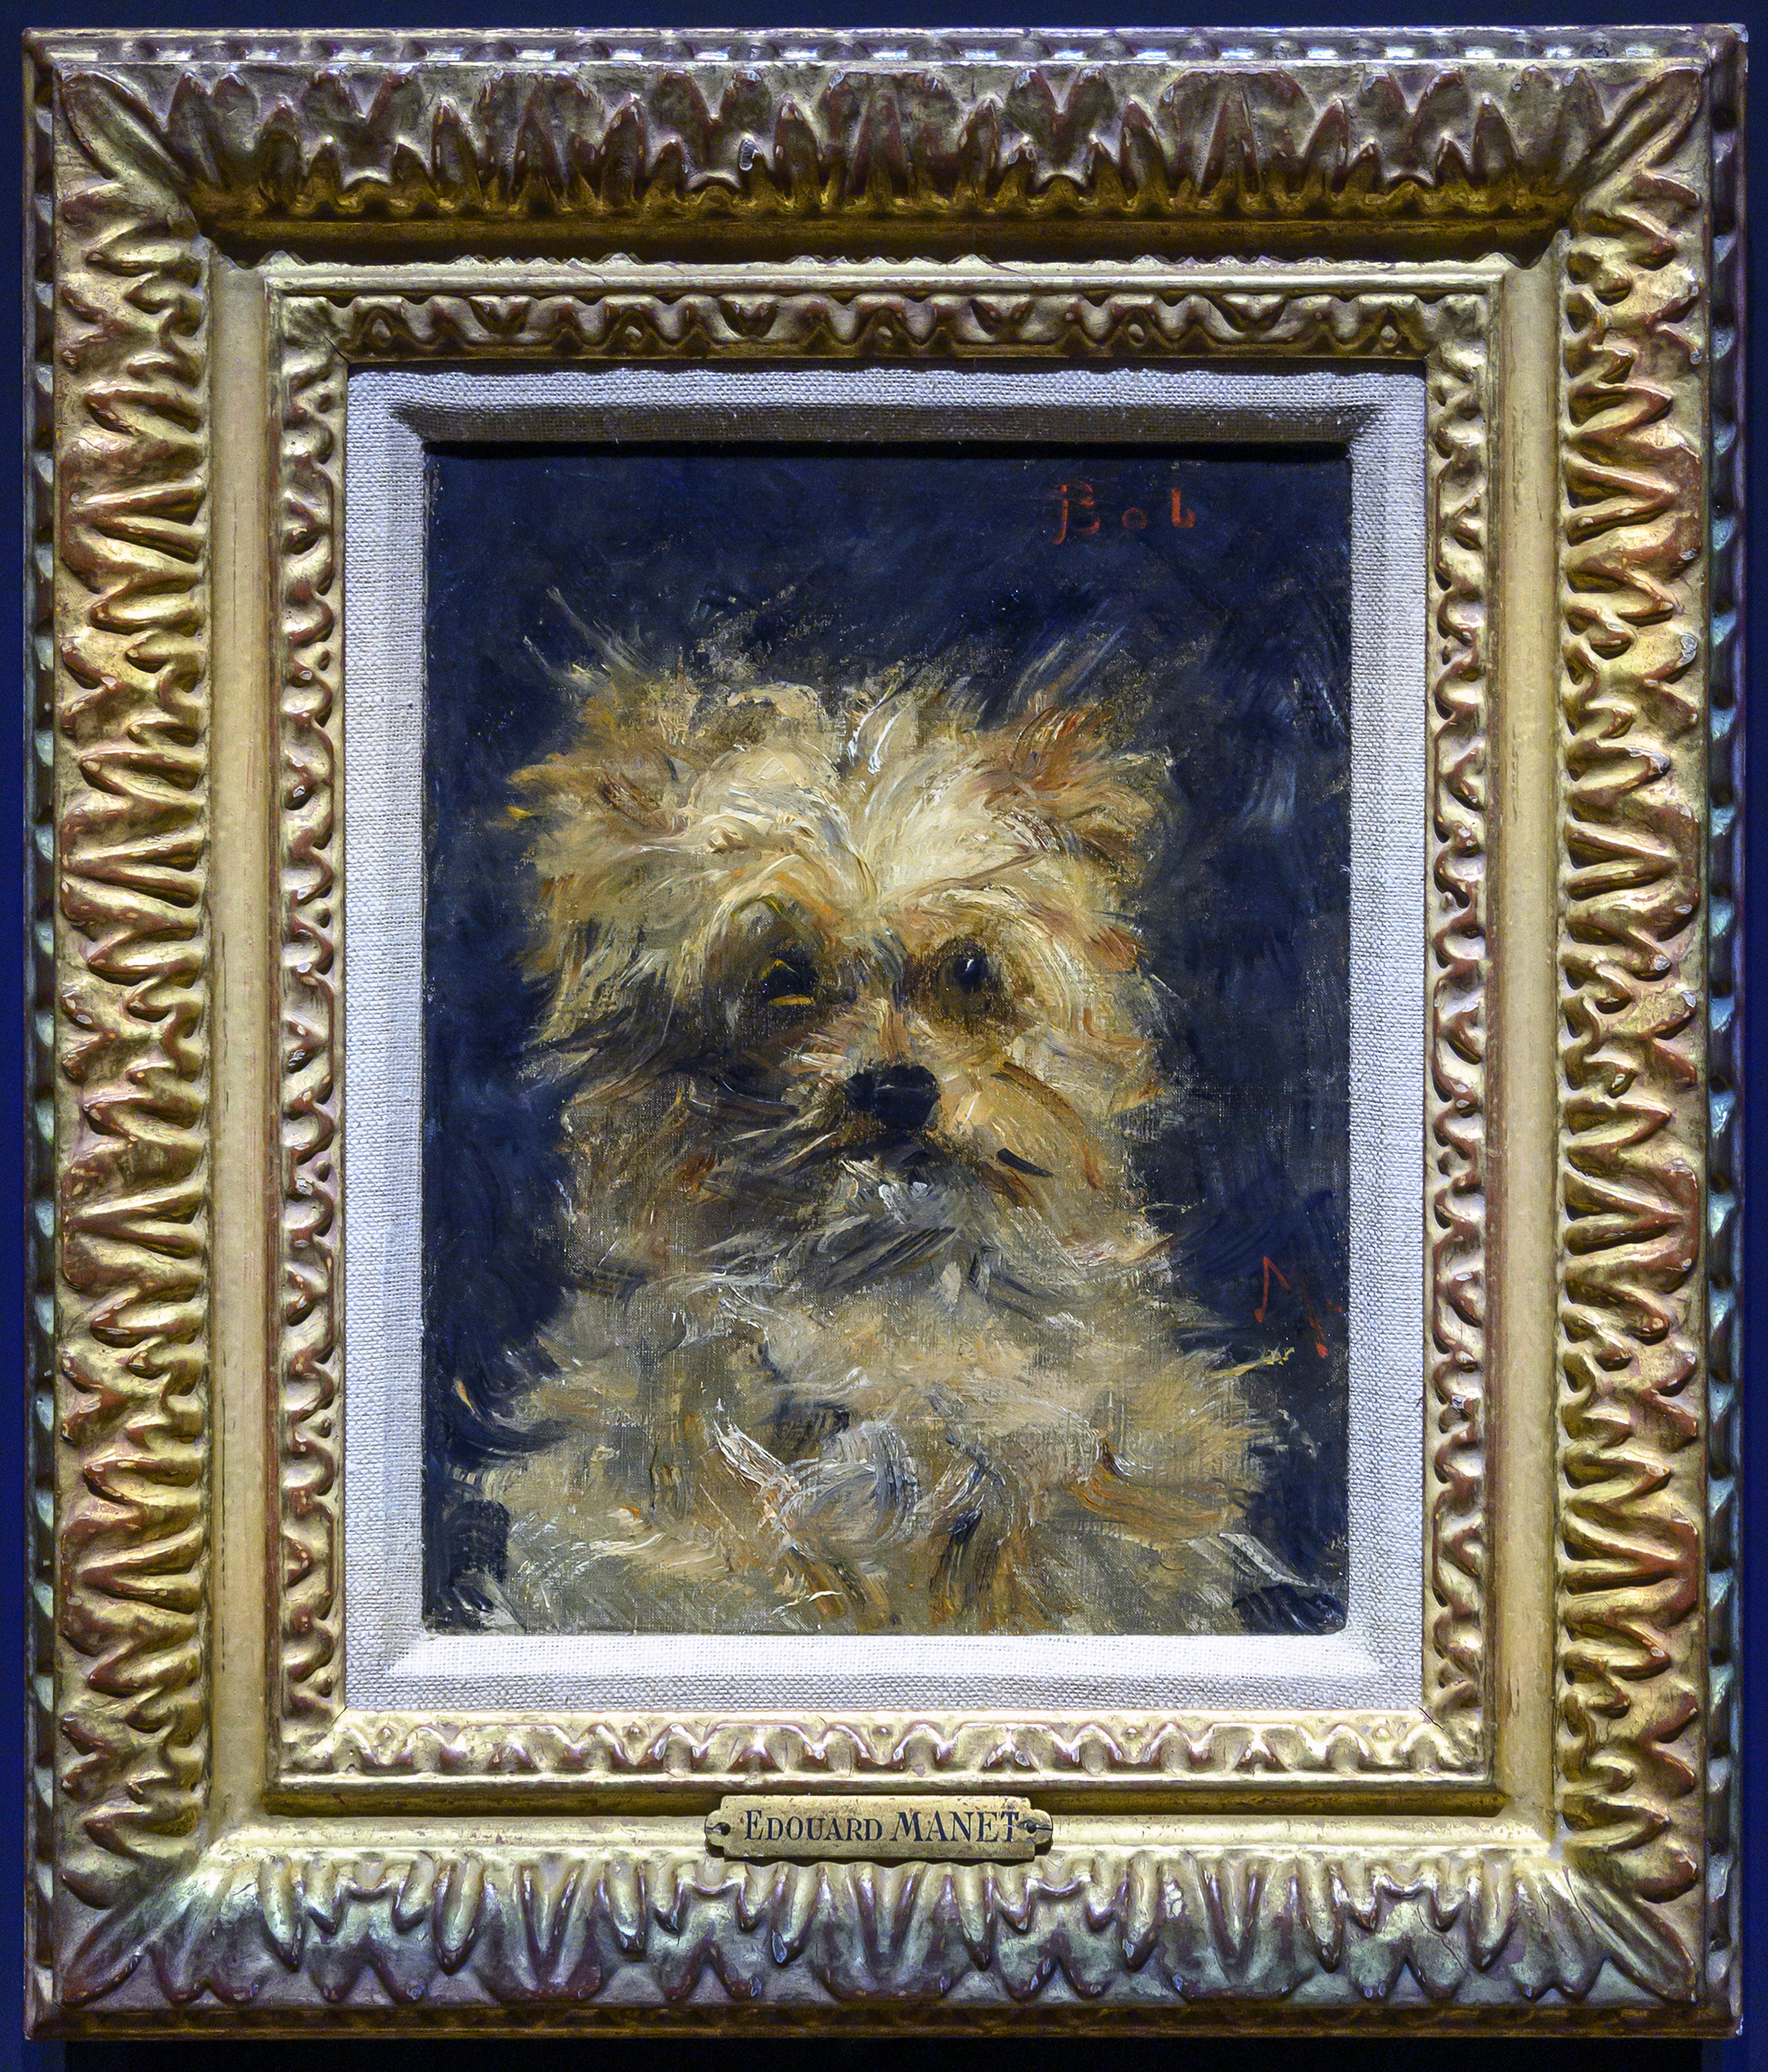 eduoard manet getty museum bob dog painting